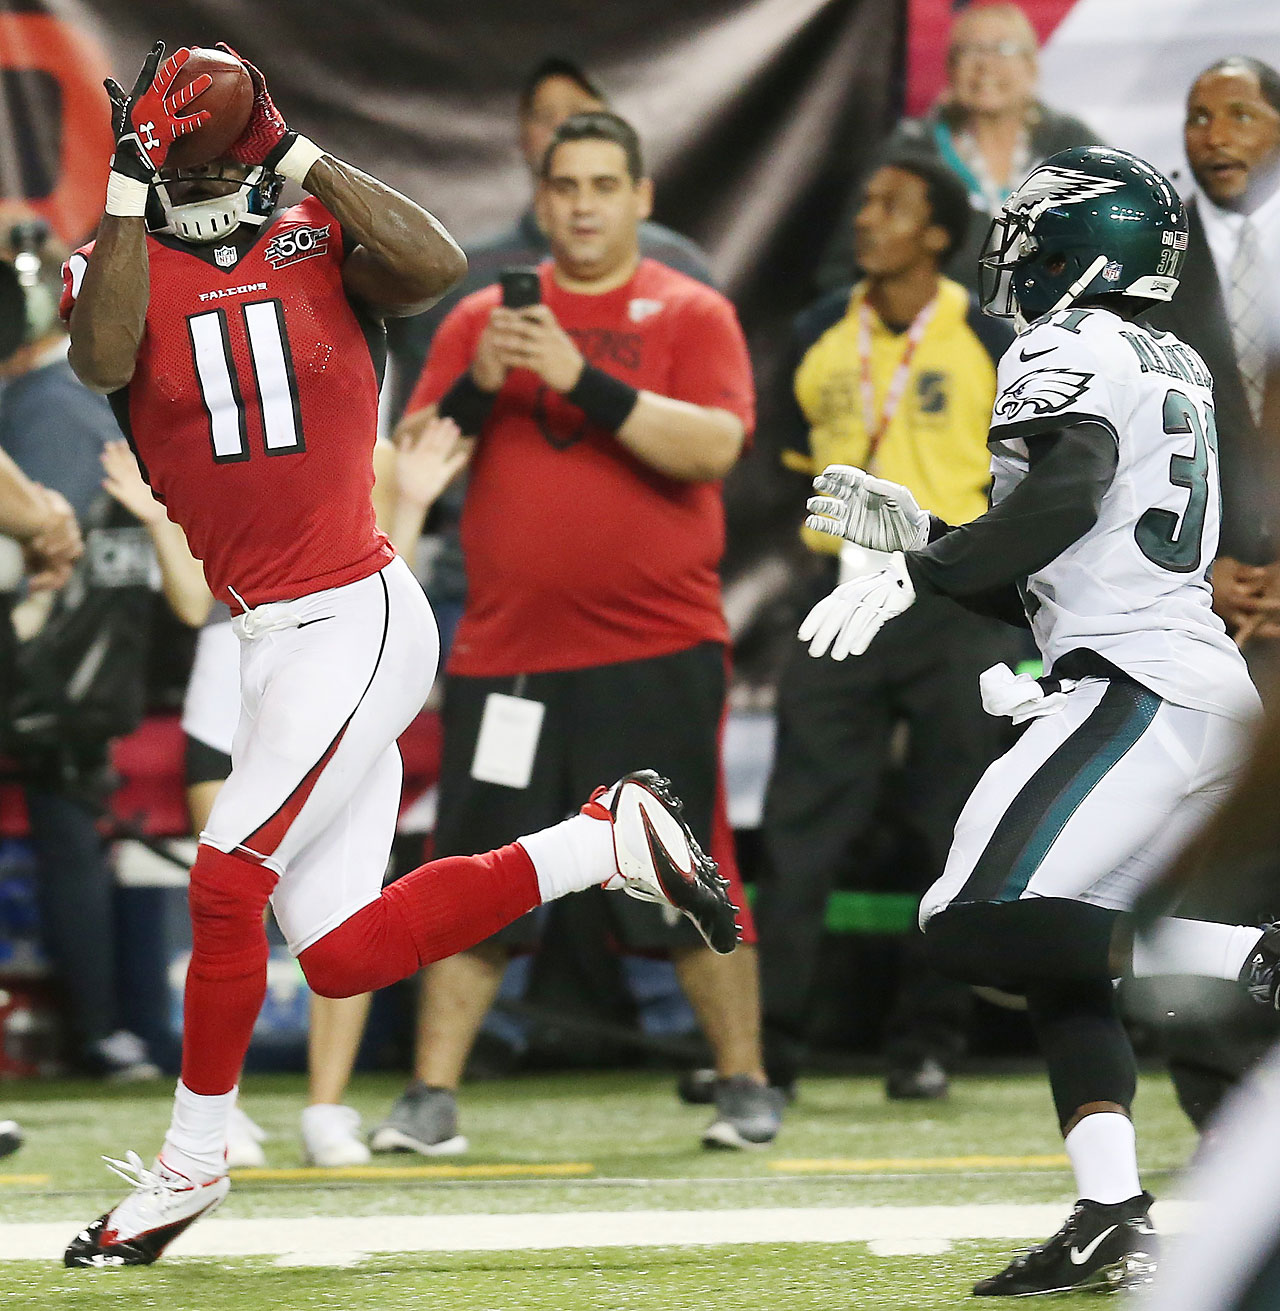 Atlanta Falcons wide receiver Julio Jones makes a touchdown catch against Philadelphia Eagles defensive back Byron Maxwell.